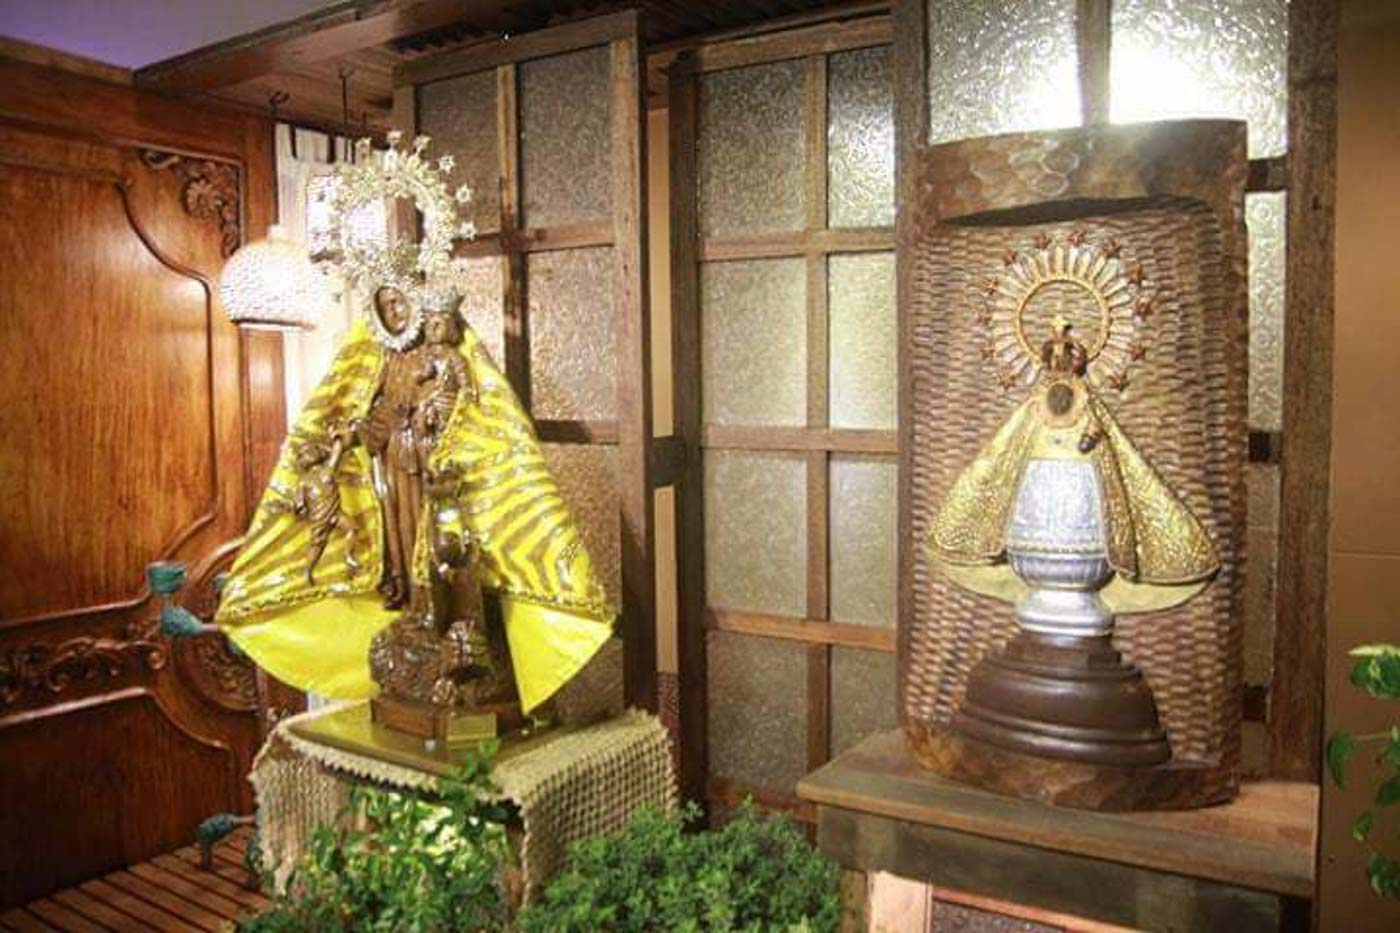 PATRONESS OF BICOL. Images of Our Lady of Salvation (left) and Our Lady of Peu00f1afrancia. Photo courtesy of Vynce Opeu00f1a